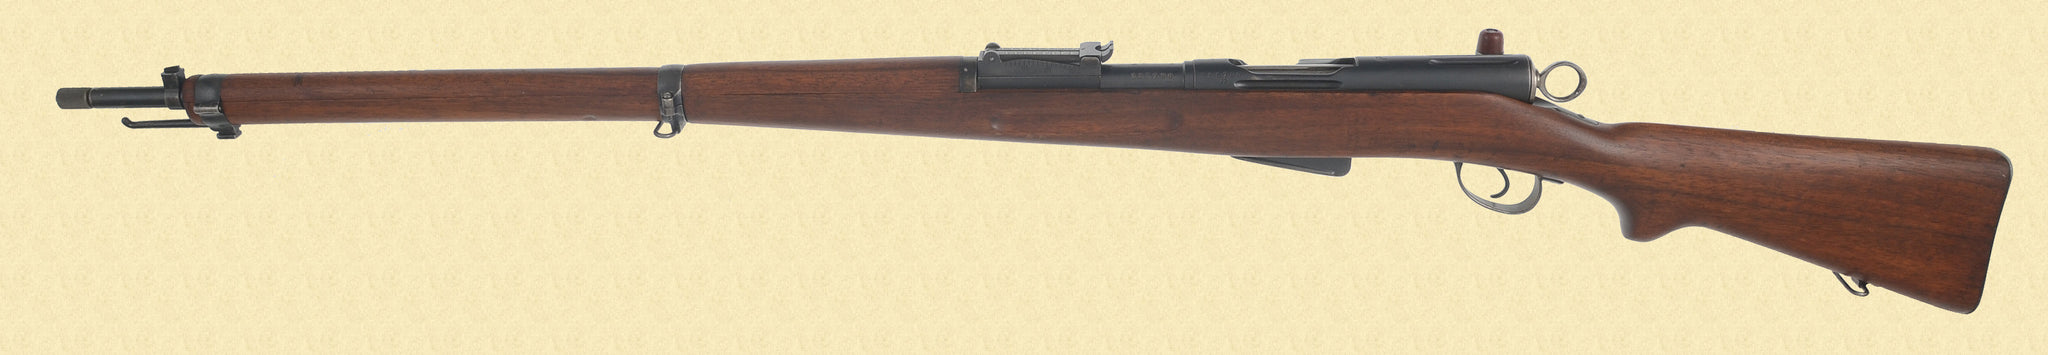 SWISS 1911 RIFLE